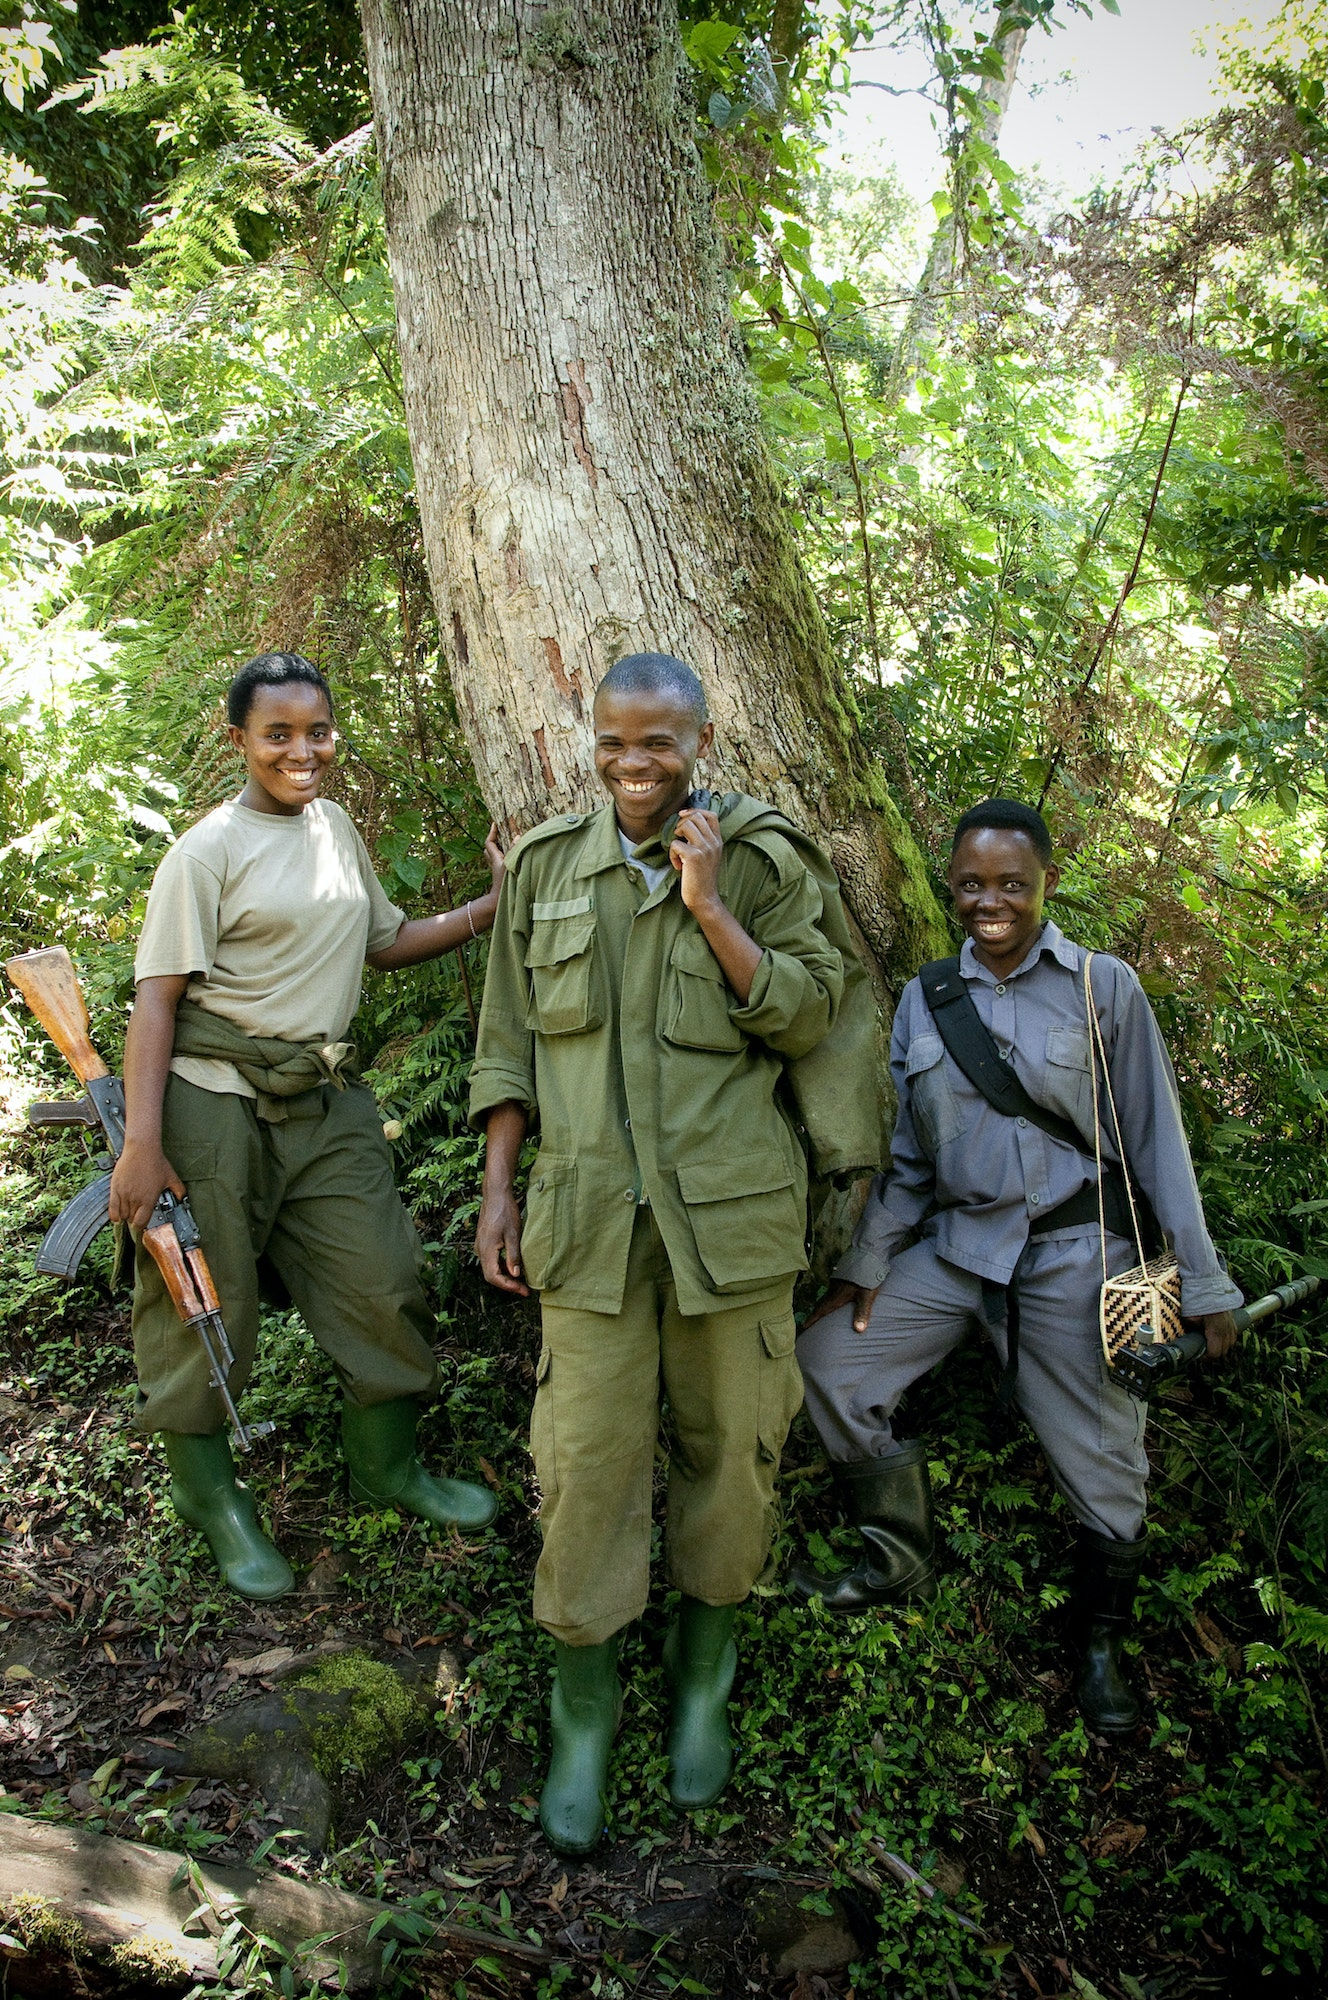 Uganda Wildlife Authority guides lead visitors through the Ruhija section of Bwindi Impenetrable National Park.